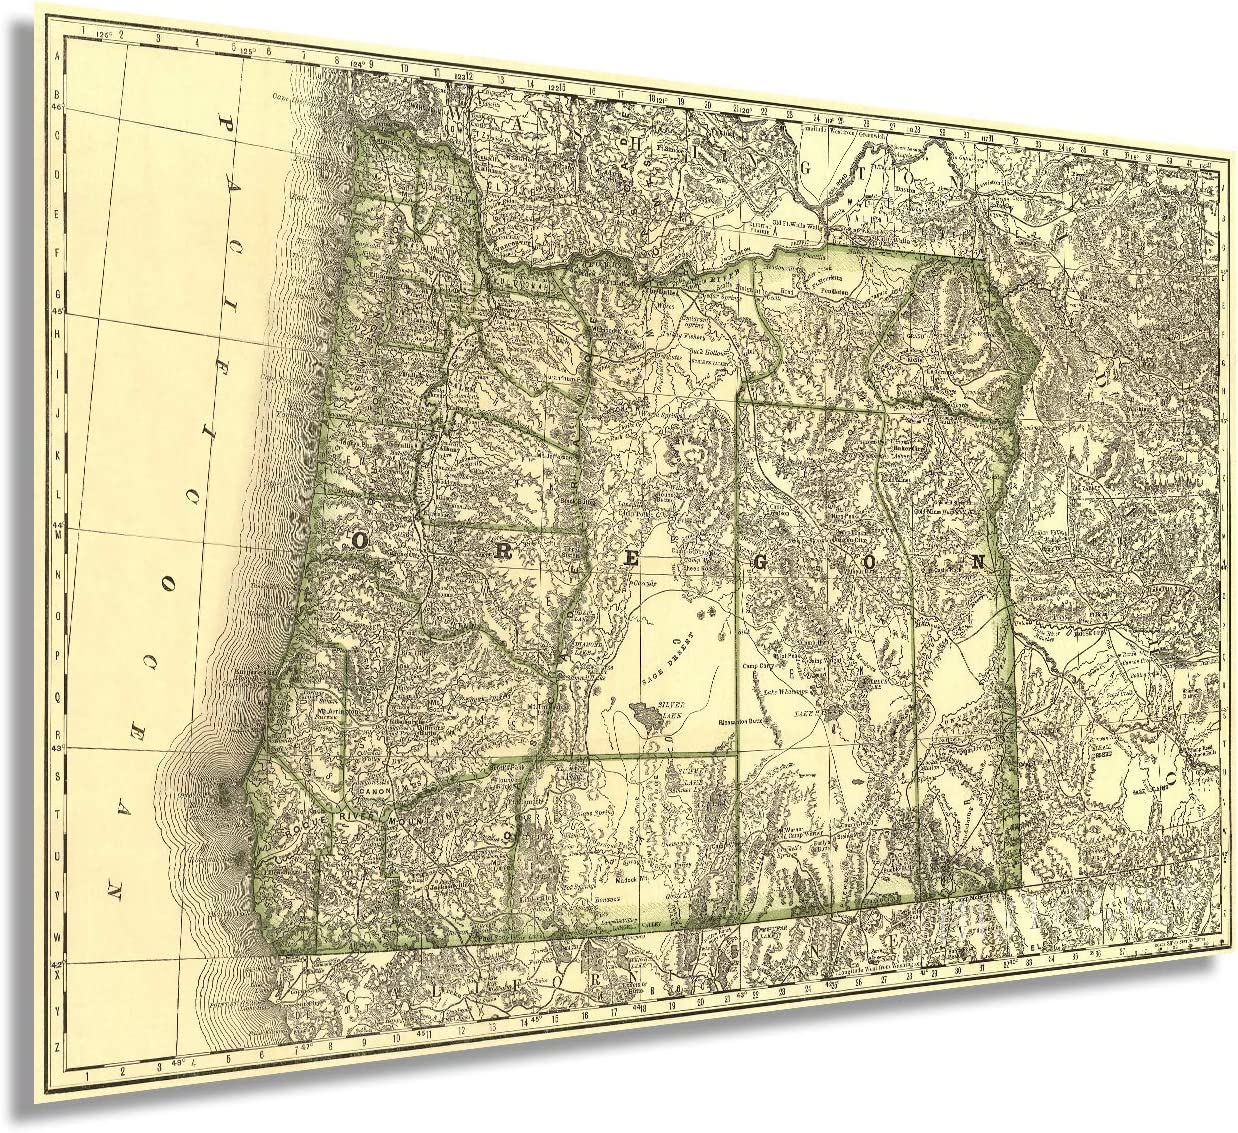 Historix Vintage 1876 Map of Oregon - 16x24 Inch Vintage Map of Oregon Wall Art - Oregon Map Print Showing Railroads, Counties, Lakes and Rivers - Oregon Map Poster - Oregon Art Wall Decor (2 sizes)